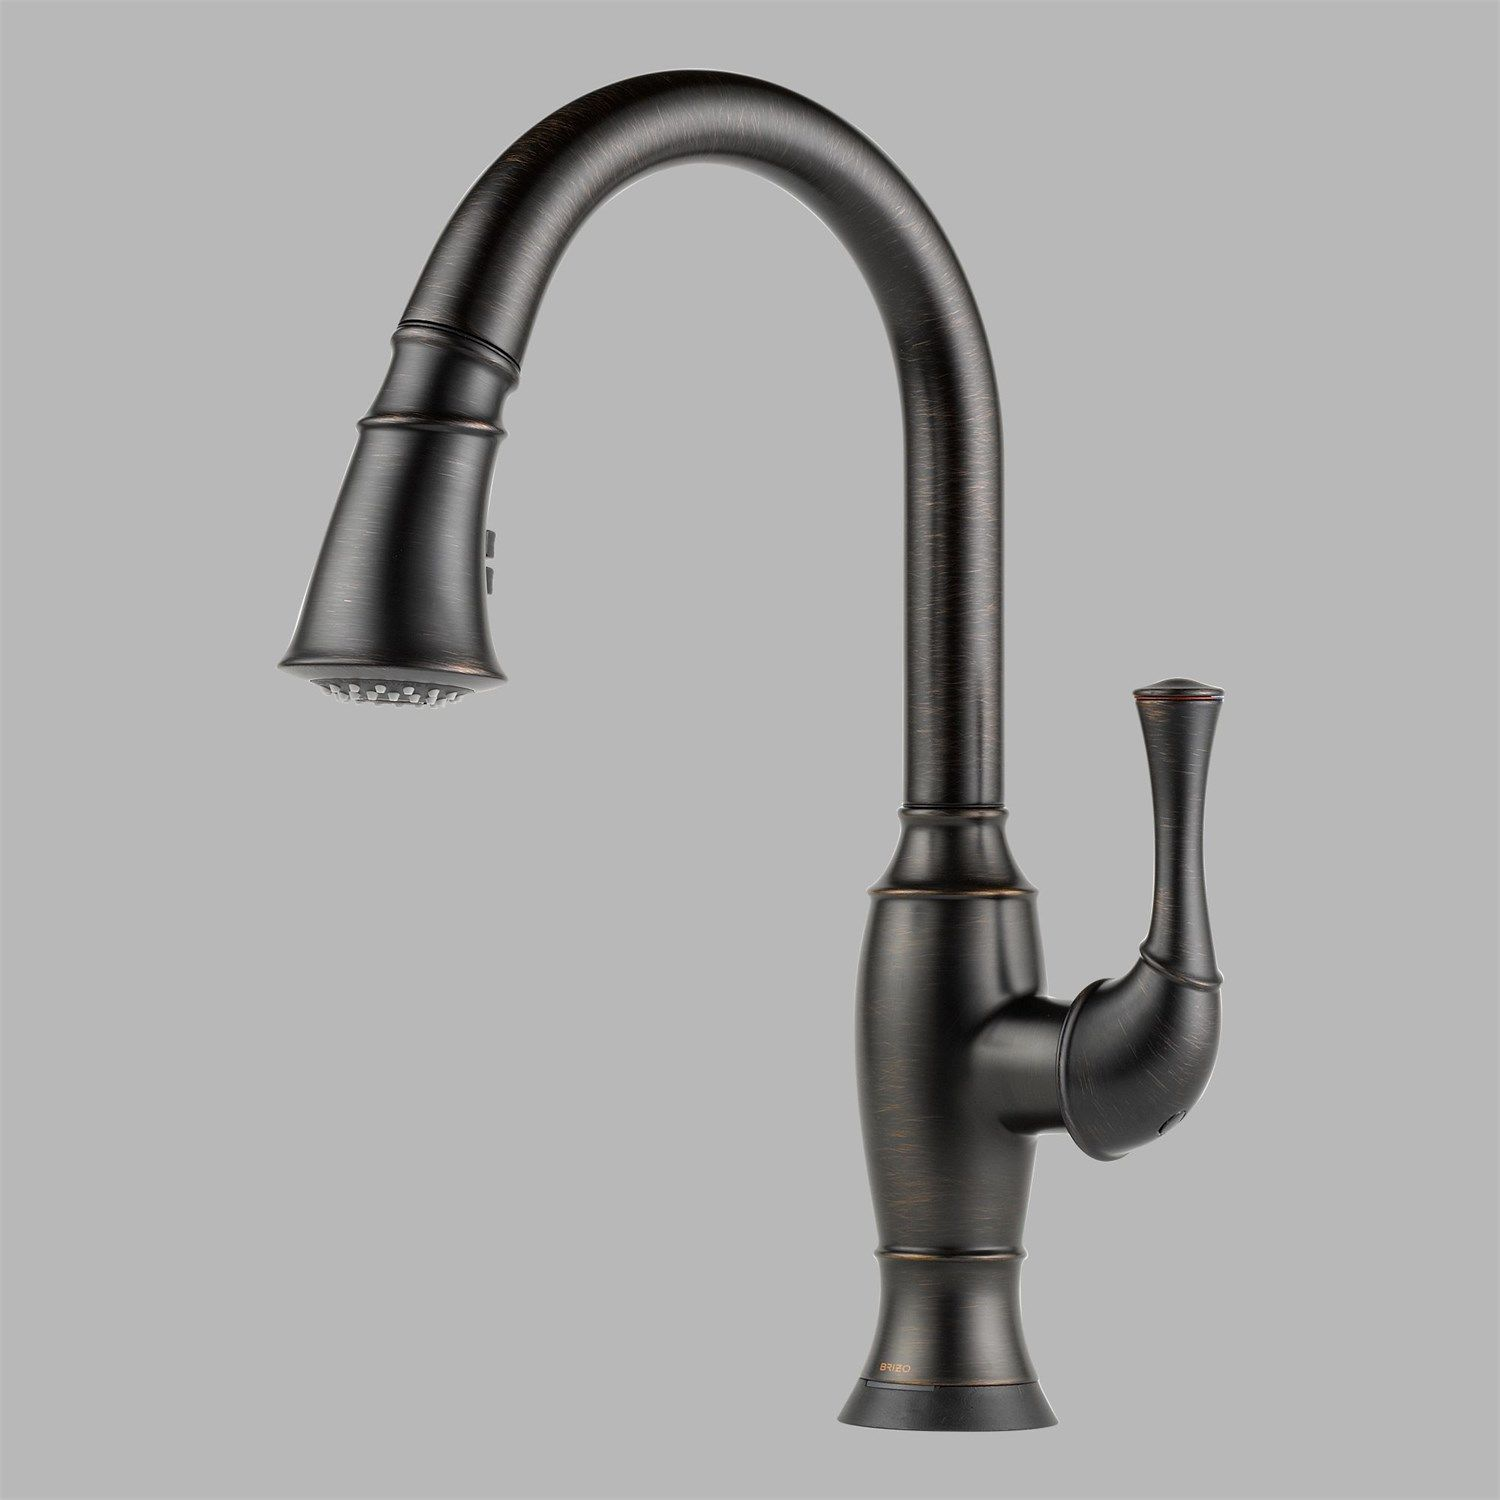 Brizo 64003lf Rb Talo Single Handle Pul Down Kitchen Faucet With Smarttouch Technology In Venetian Bronze